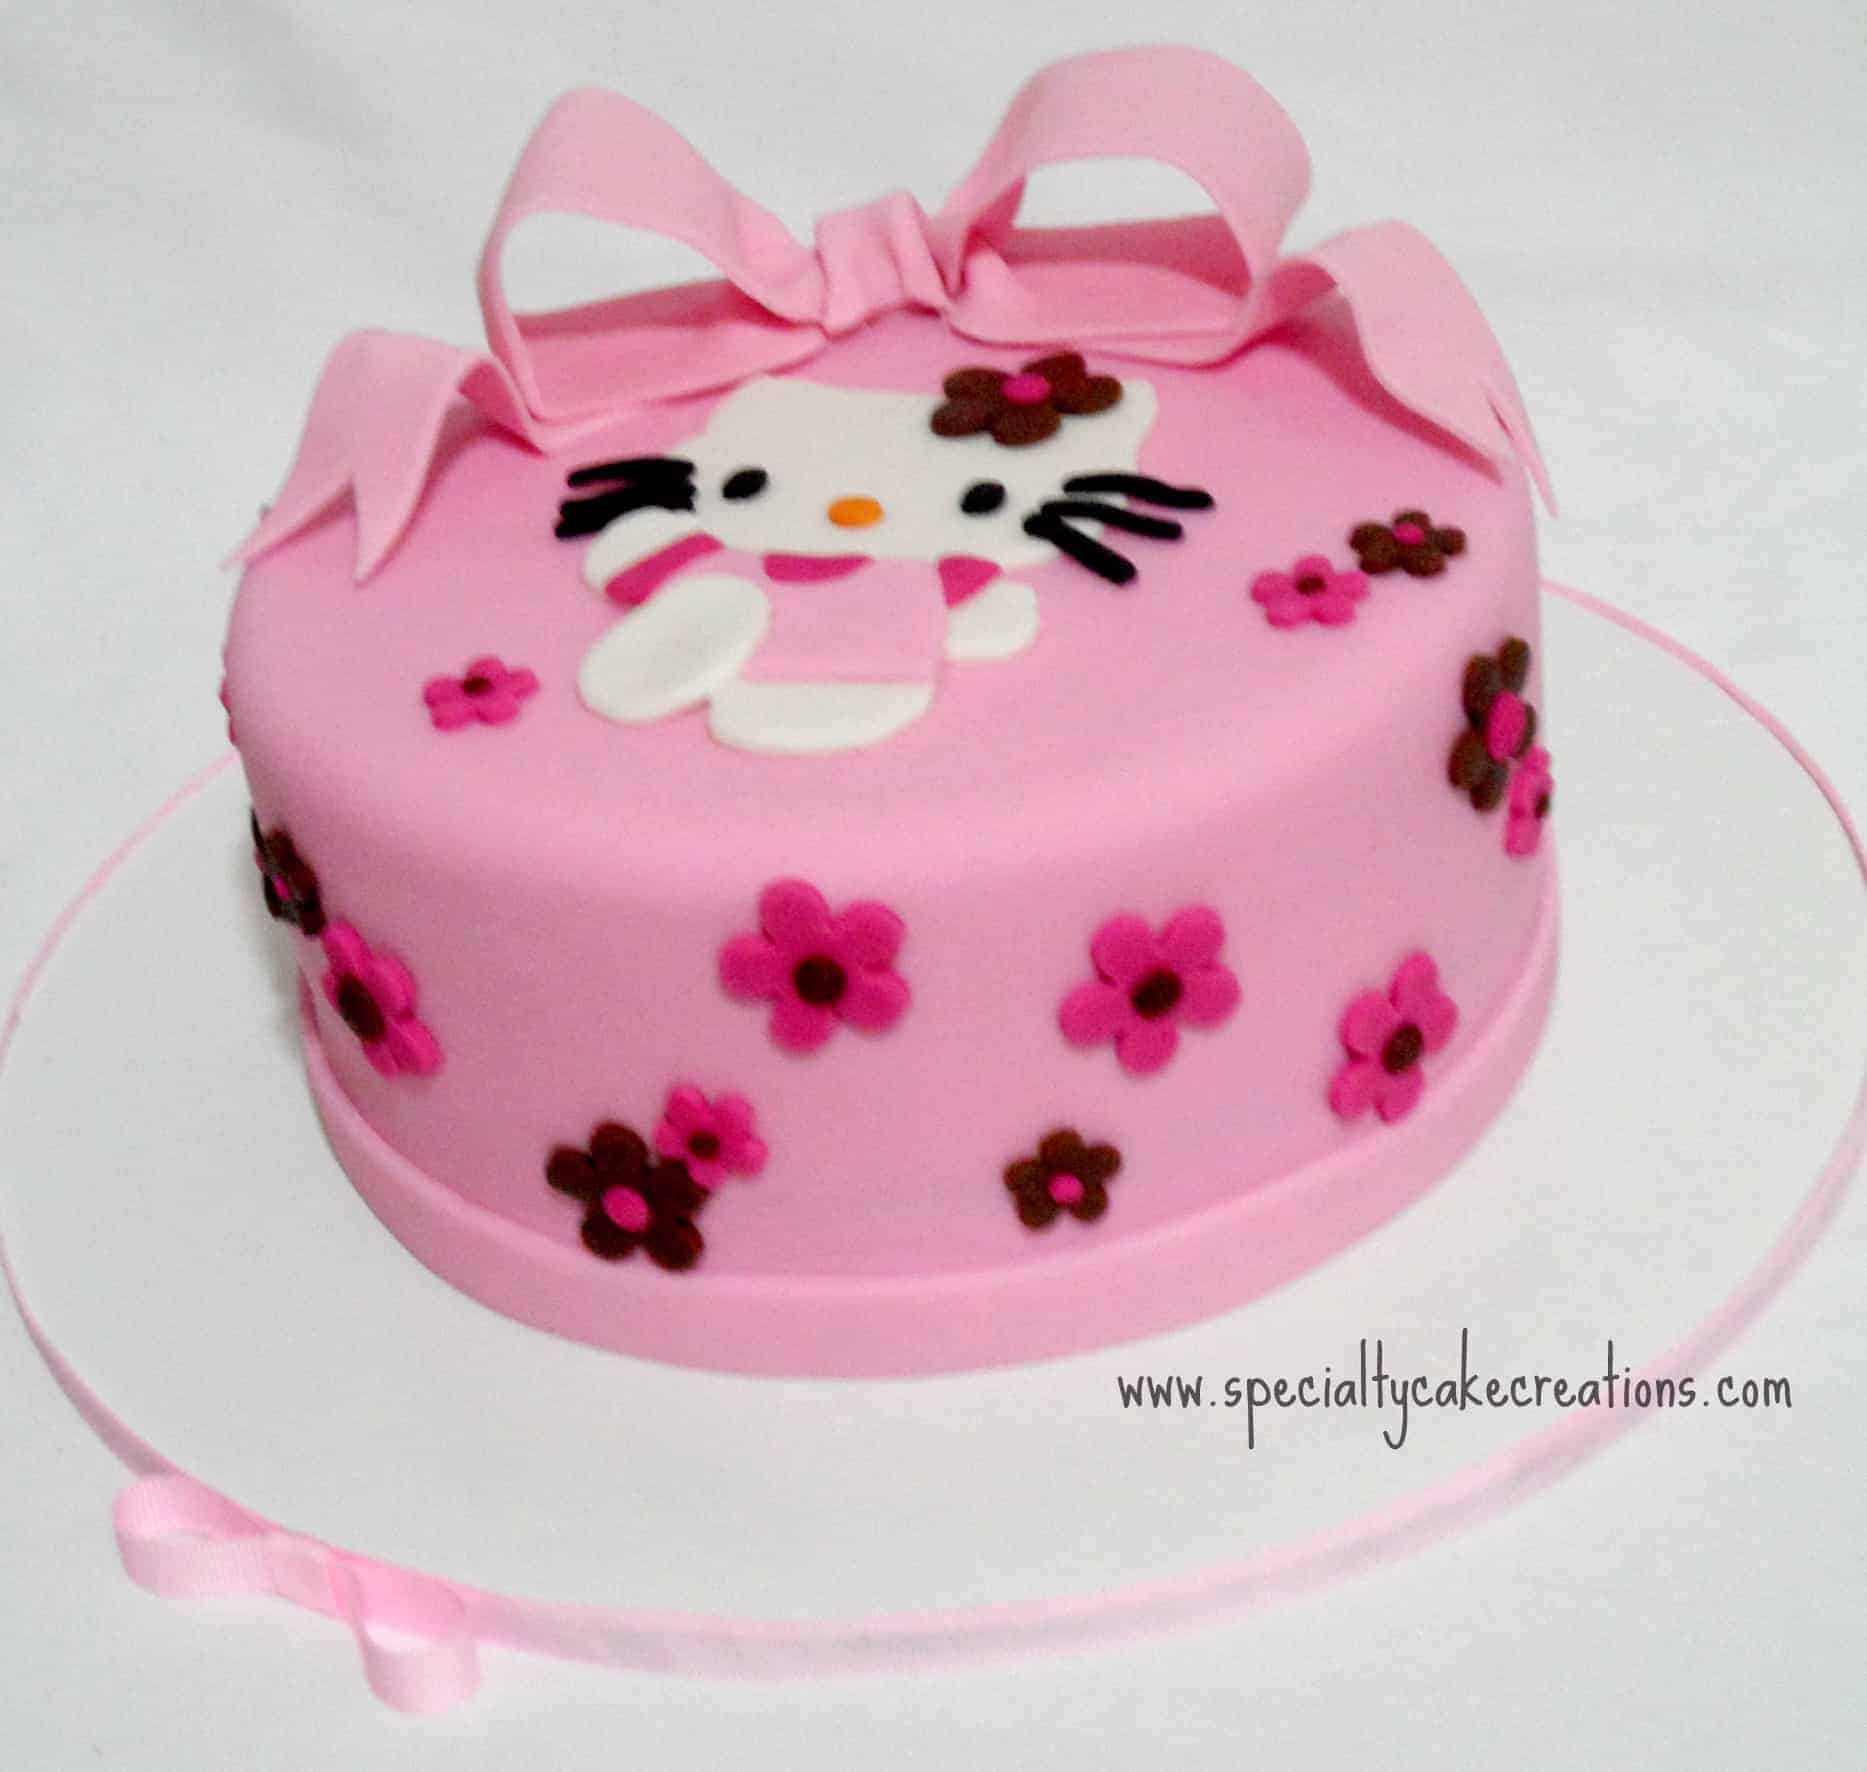 This hello kitty cake was created for a special going away party it